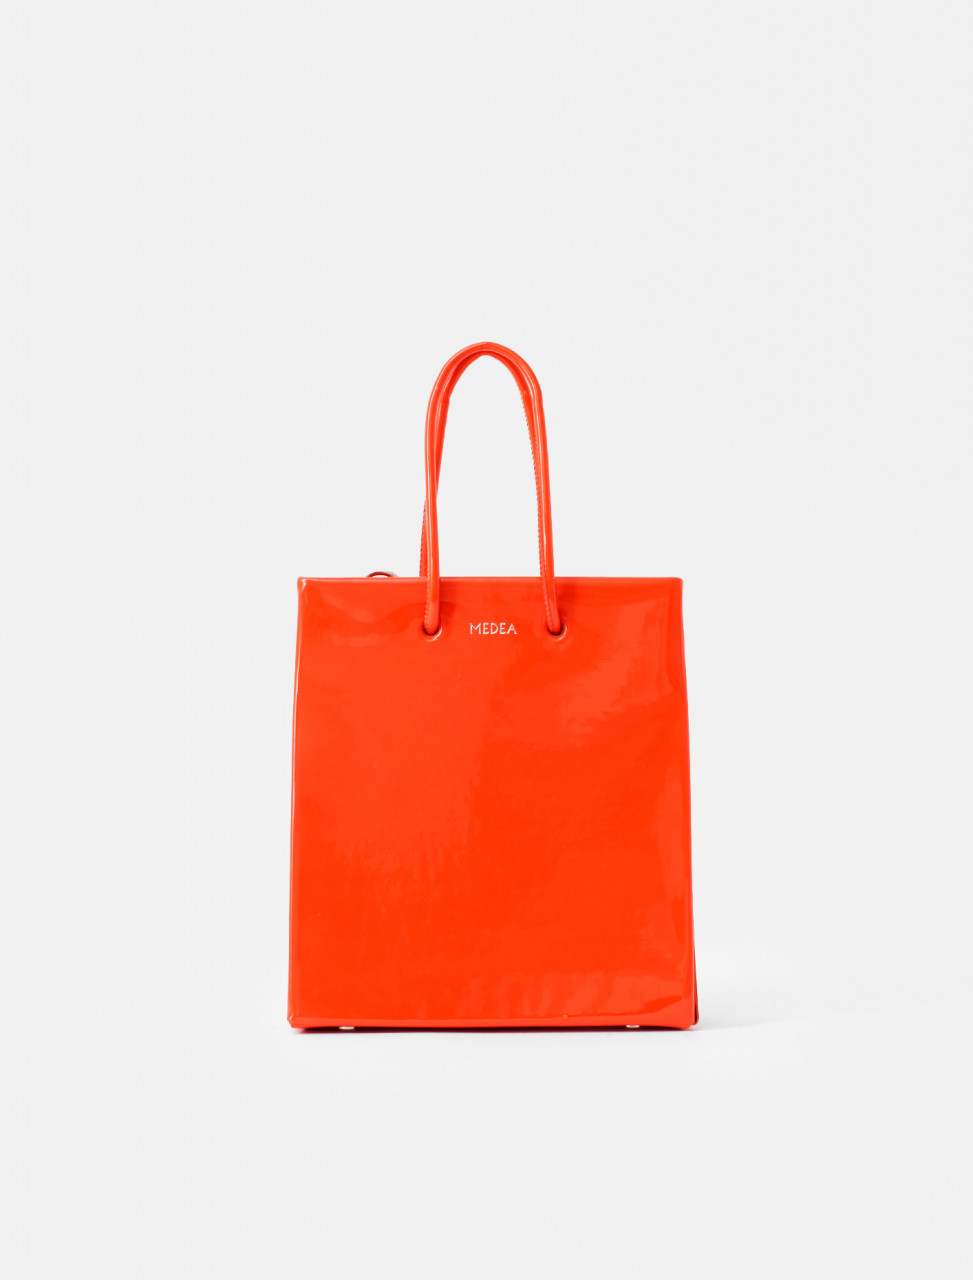 Short Tote in Scarlet